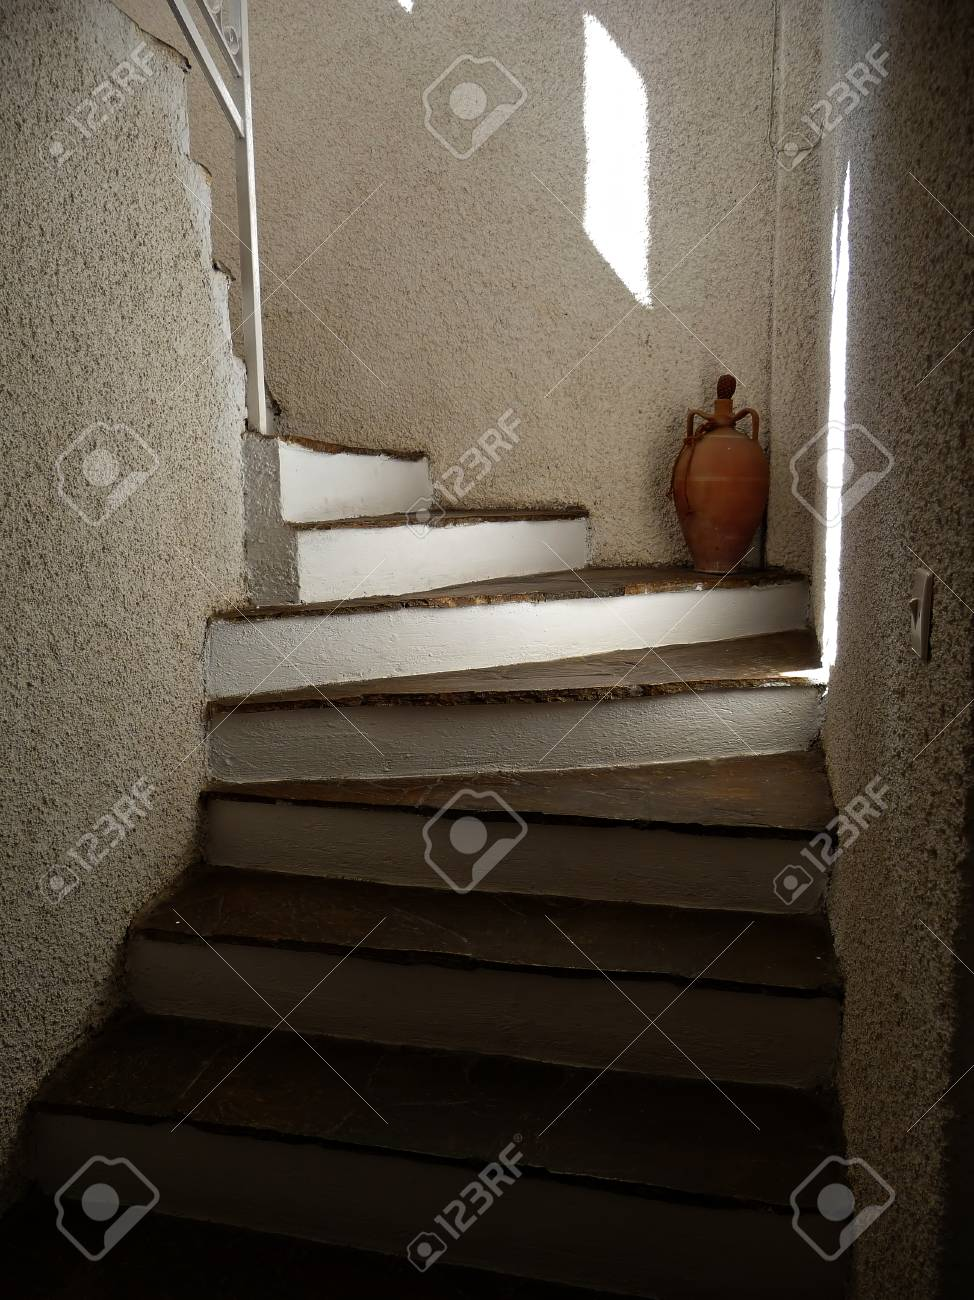 Interior Decoration White Stairs Clock On The Wall Vase In